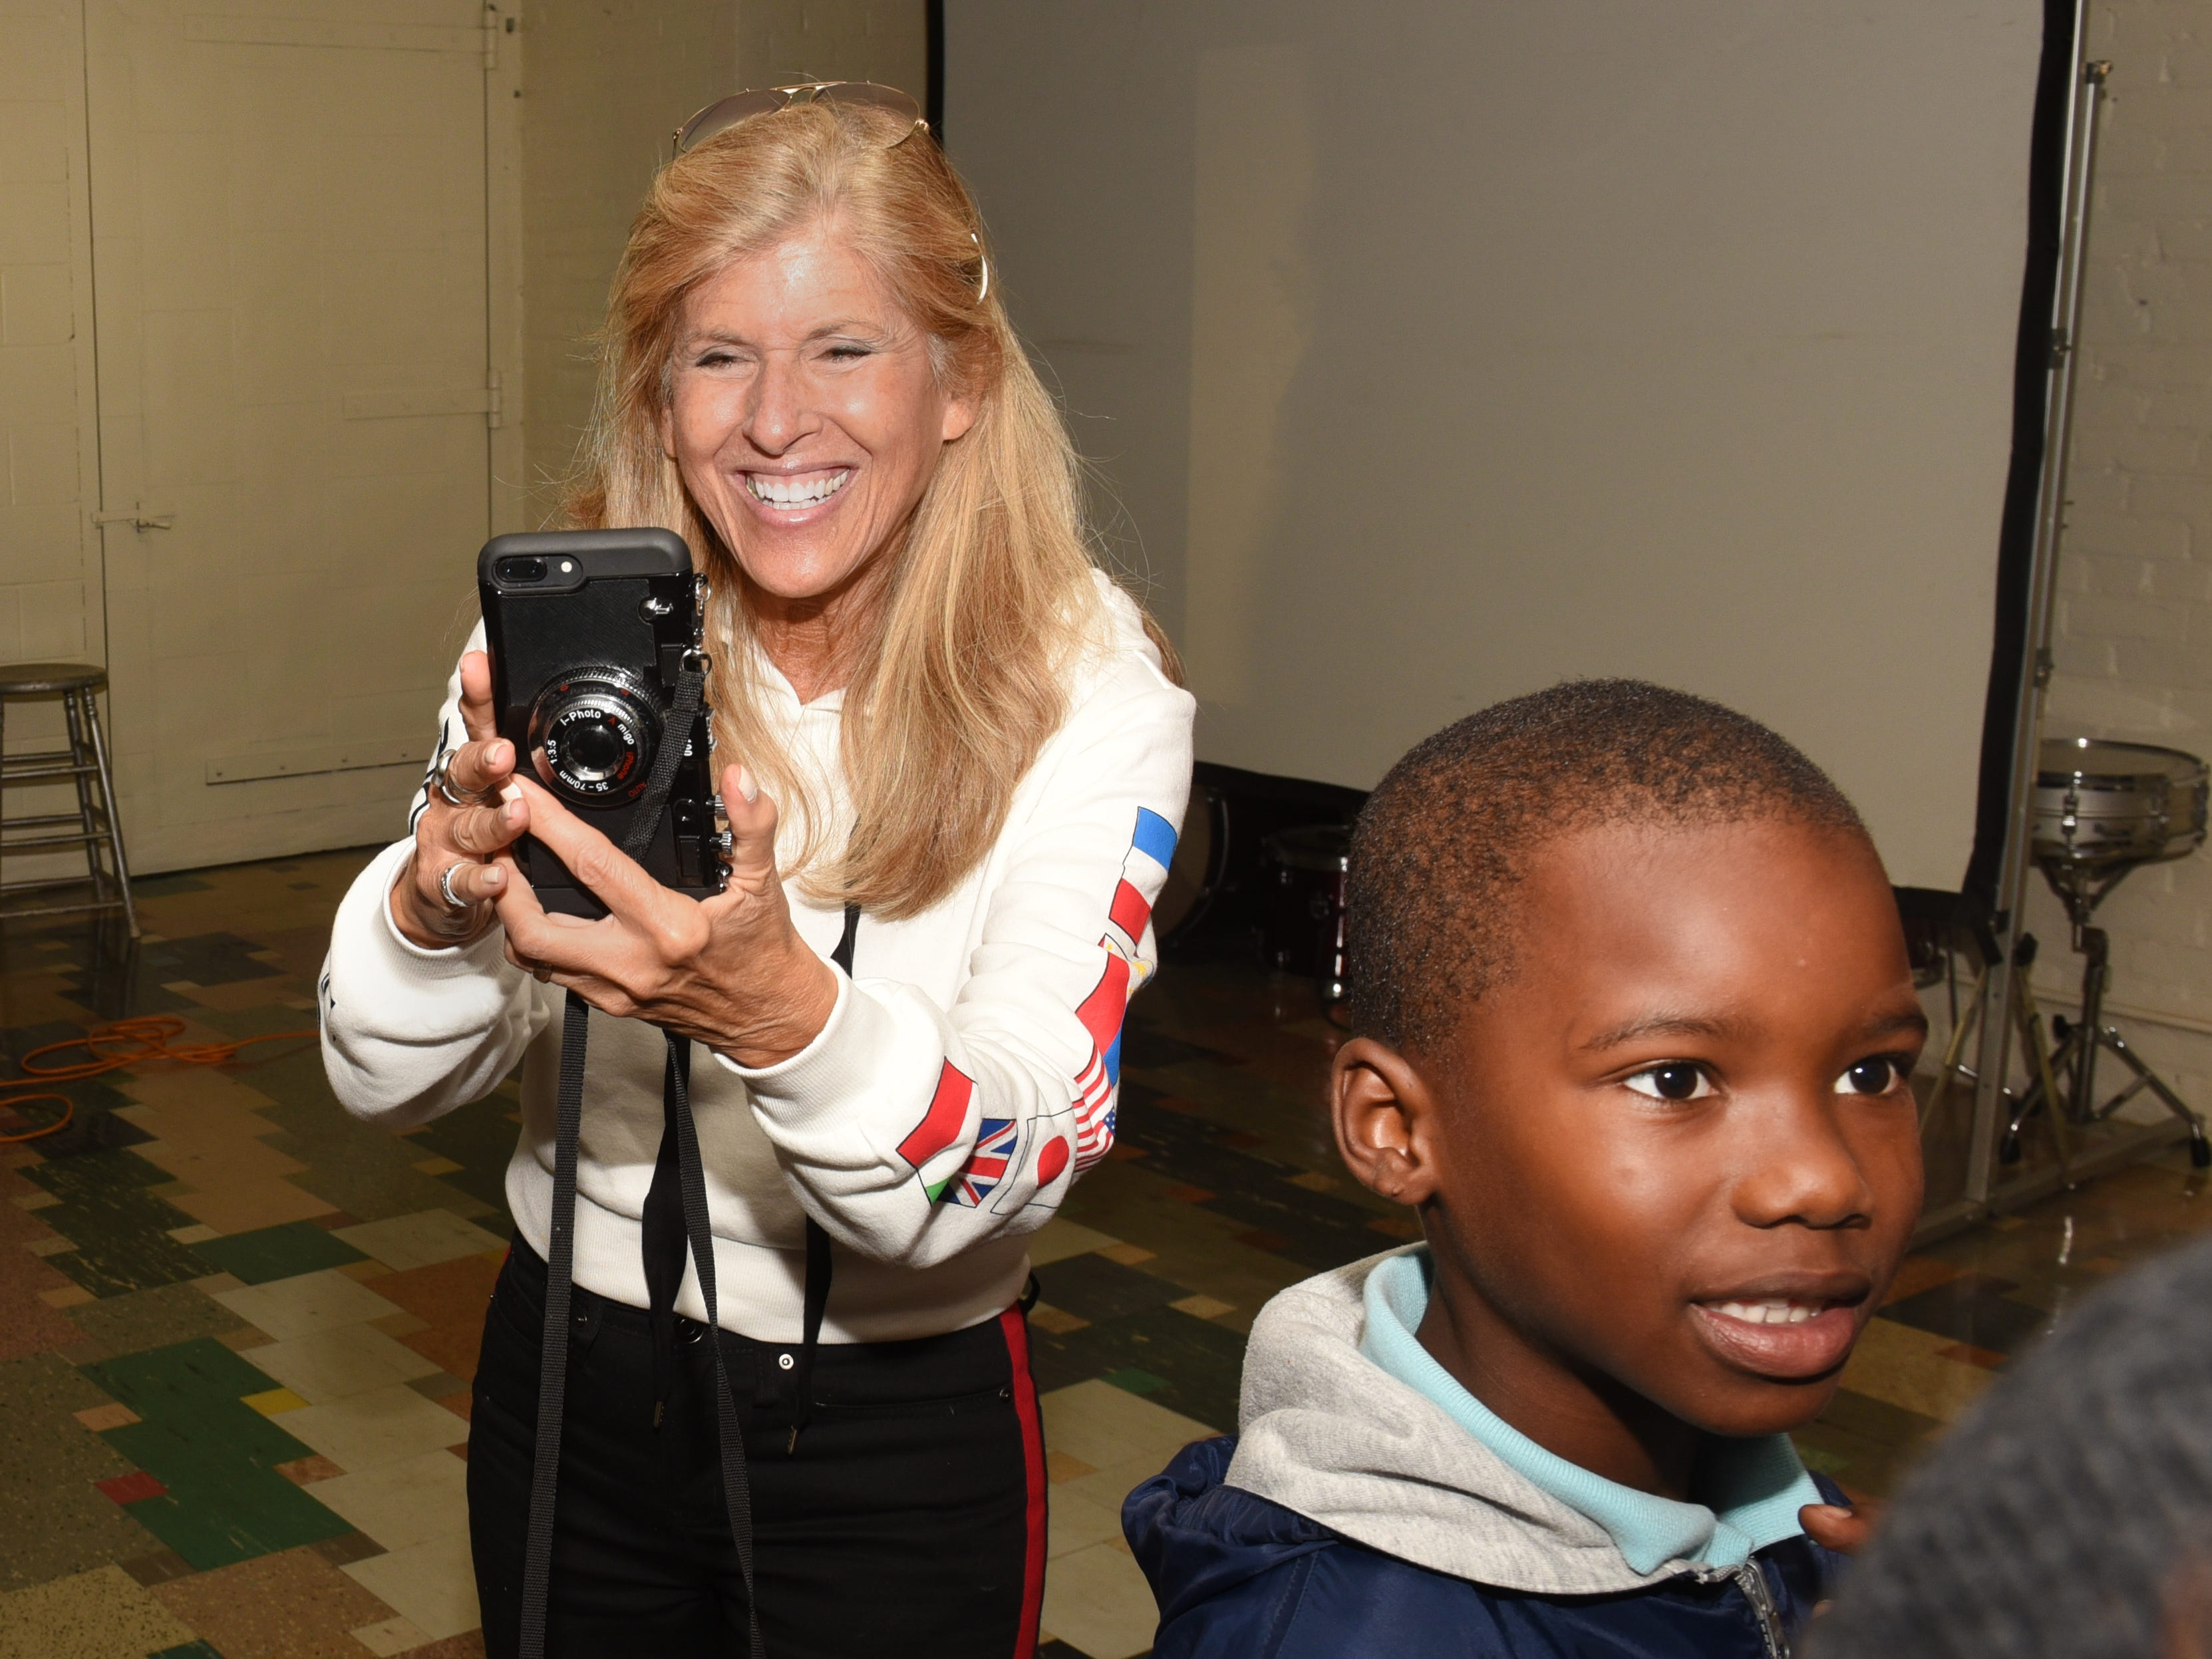 Photographer Linda Solomon takes pictures as she provides a photography lesson for homeless children held at the Cass Community Social Services World Building in Detroit on October 20, 2018.